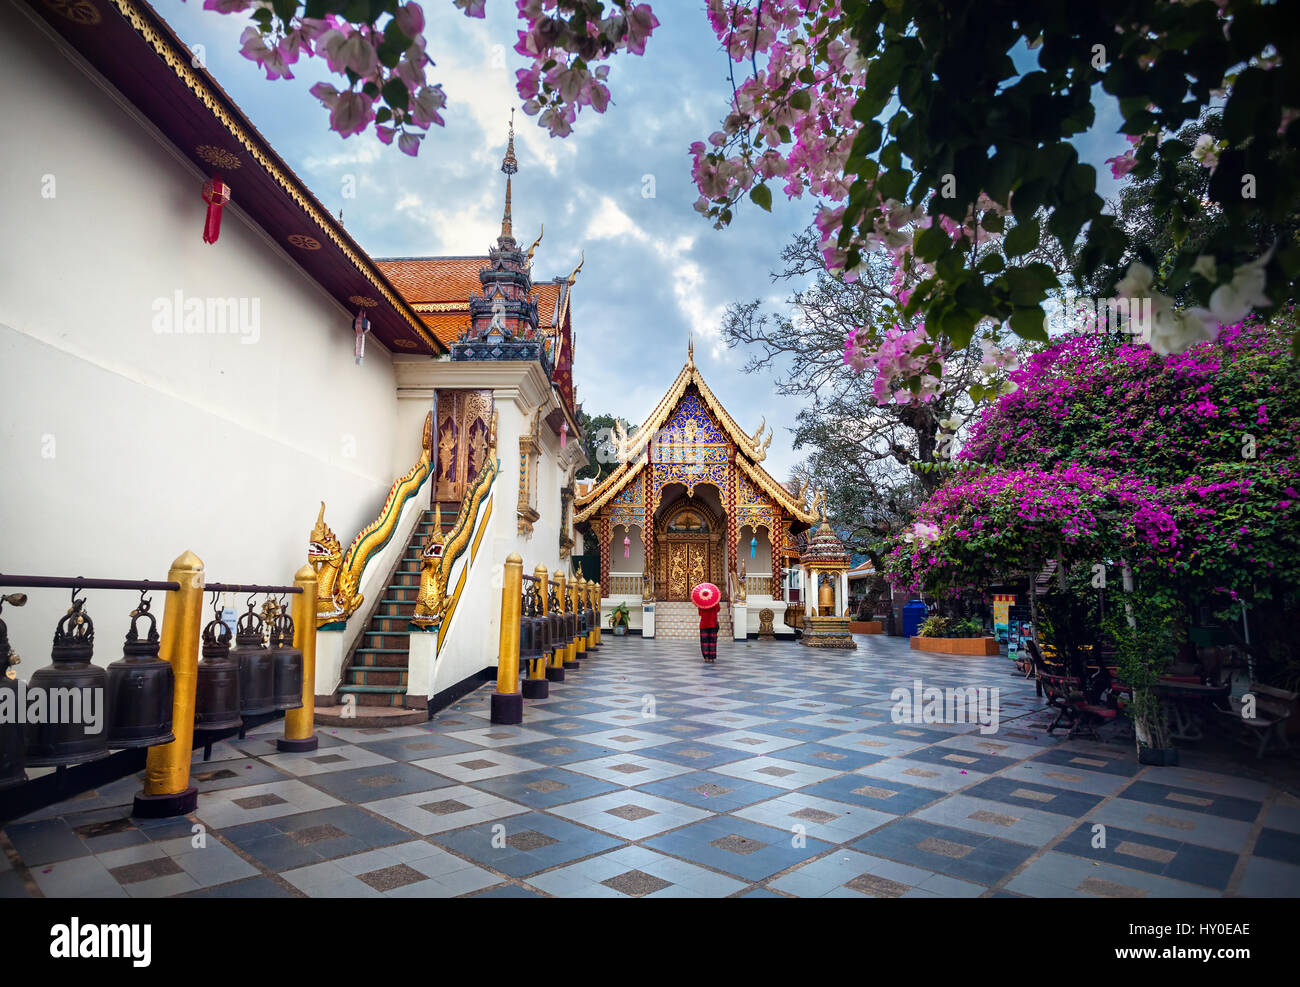 Woman tourist with red traditional Thai umbrella near Pagoda and blooming tree with pink flowers at Wat Doi Suthep - Stock Image